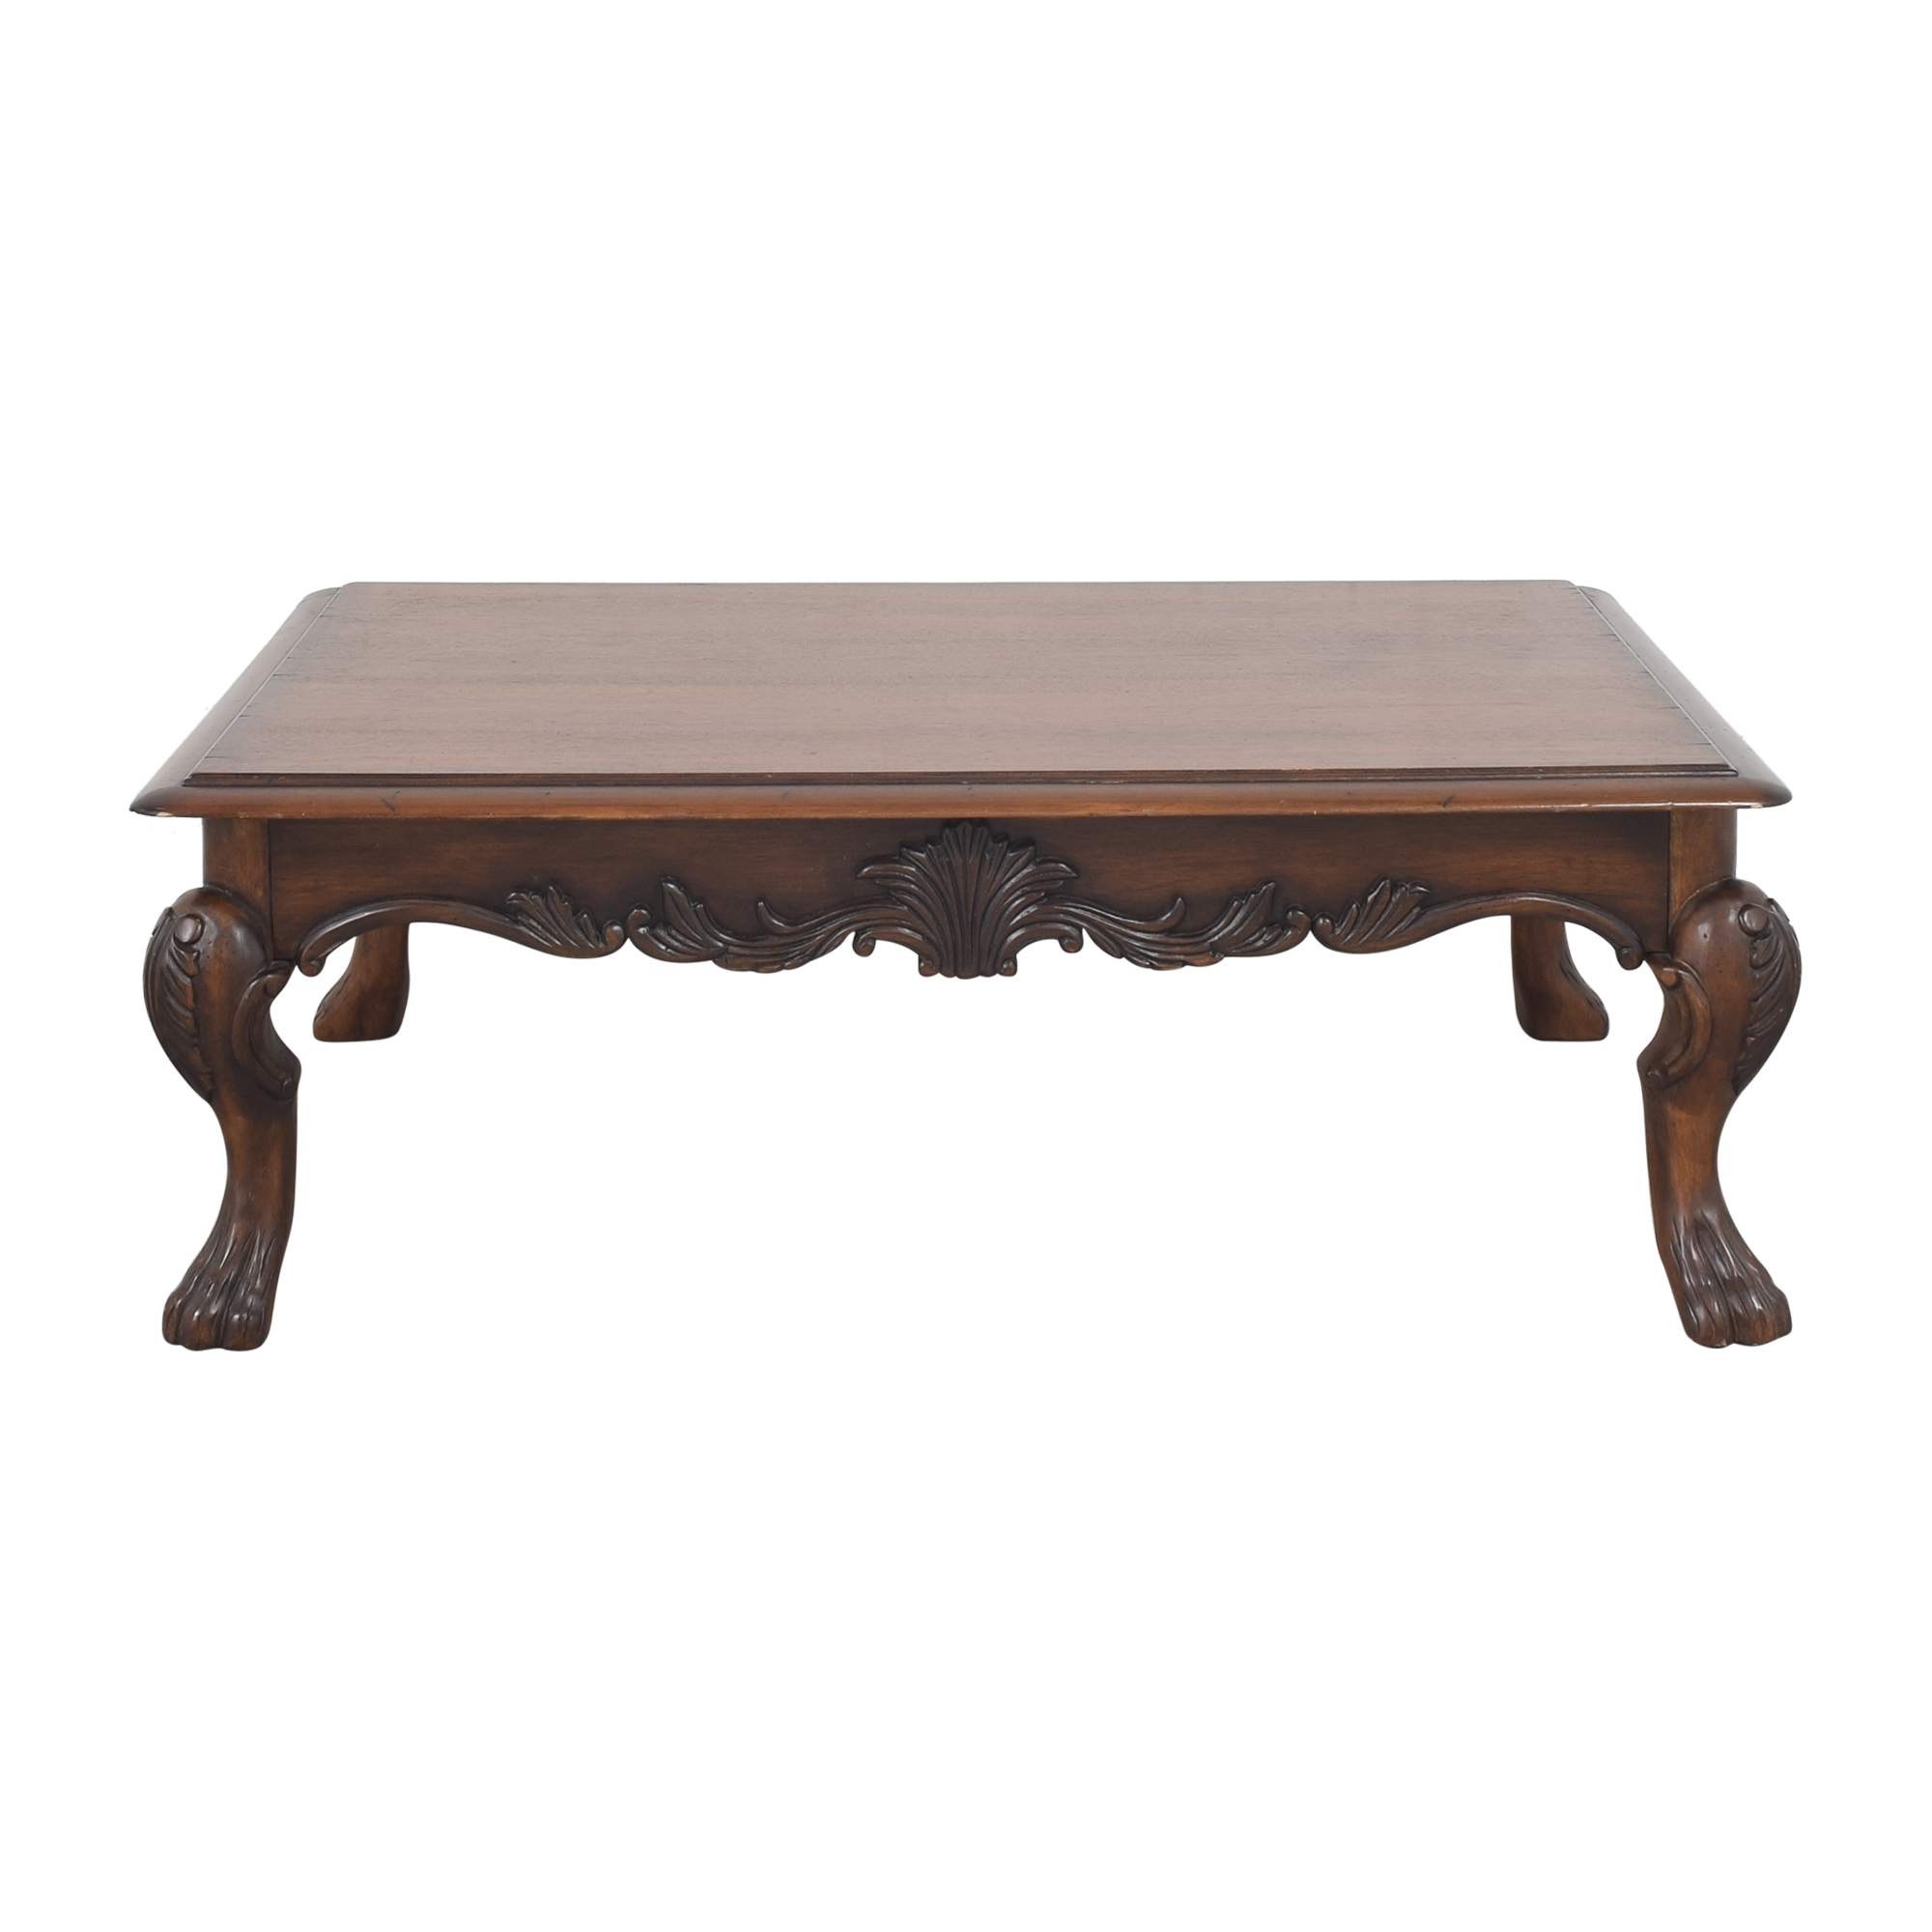 Ethan Allen Ethan Allen Cabriole Coffee Table ma